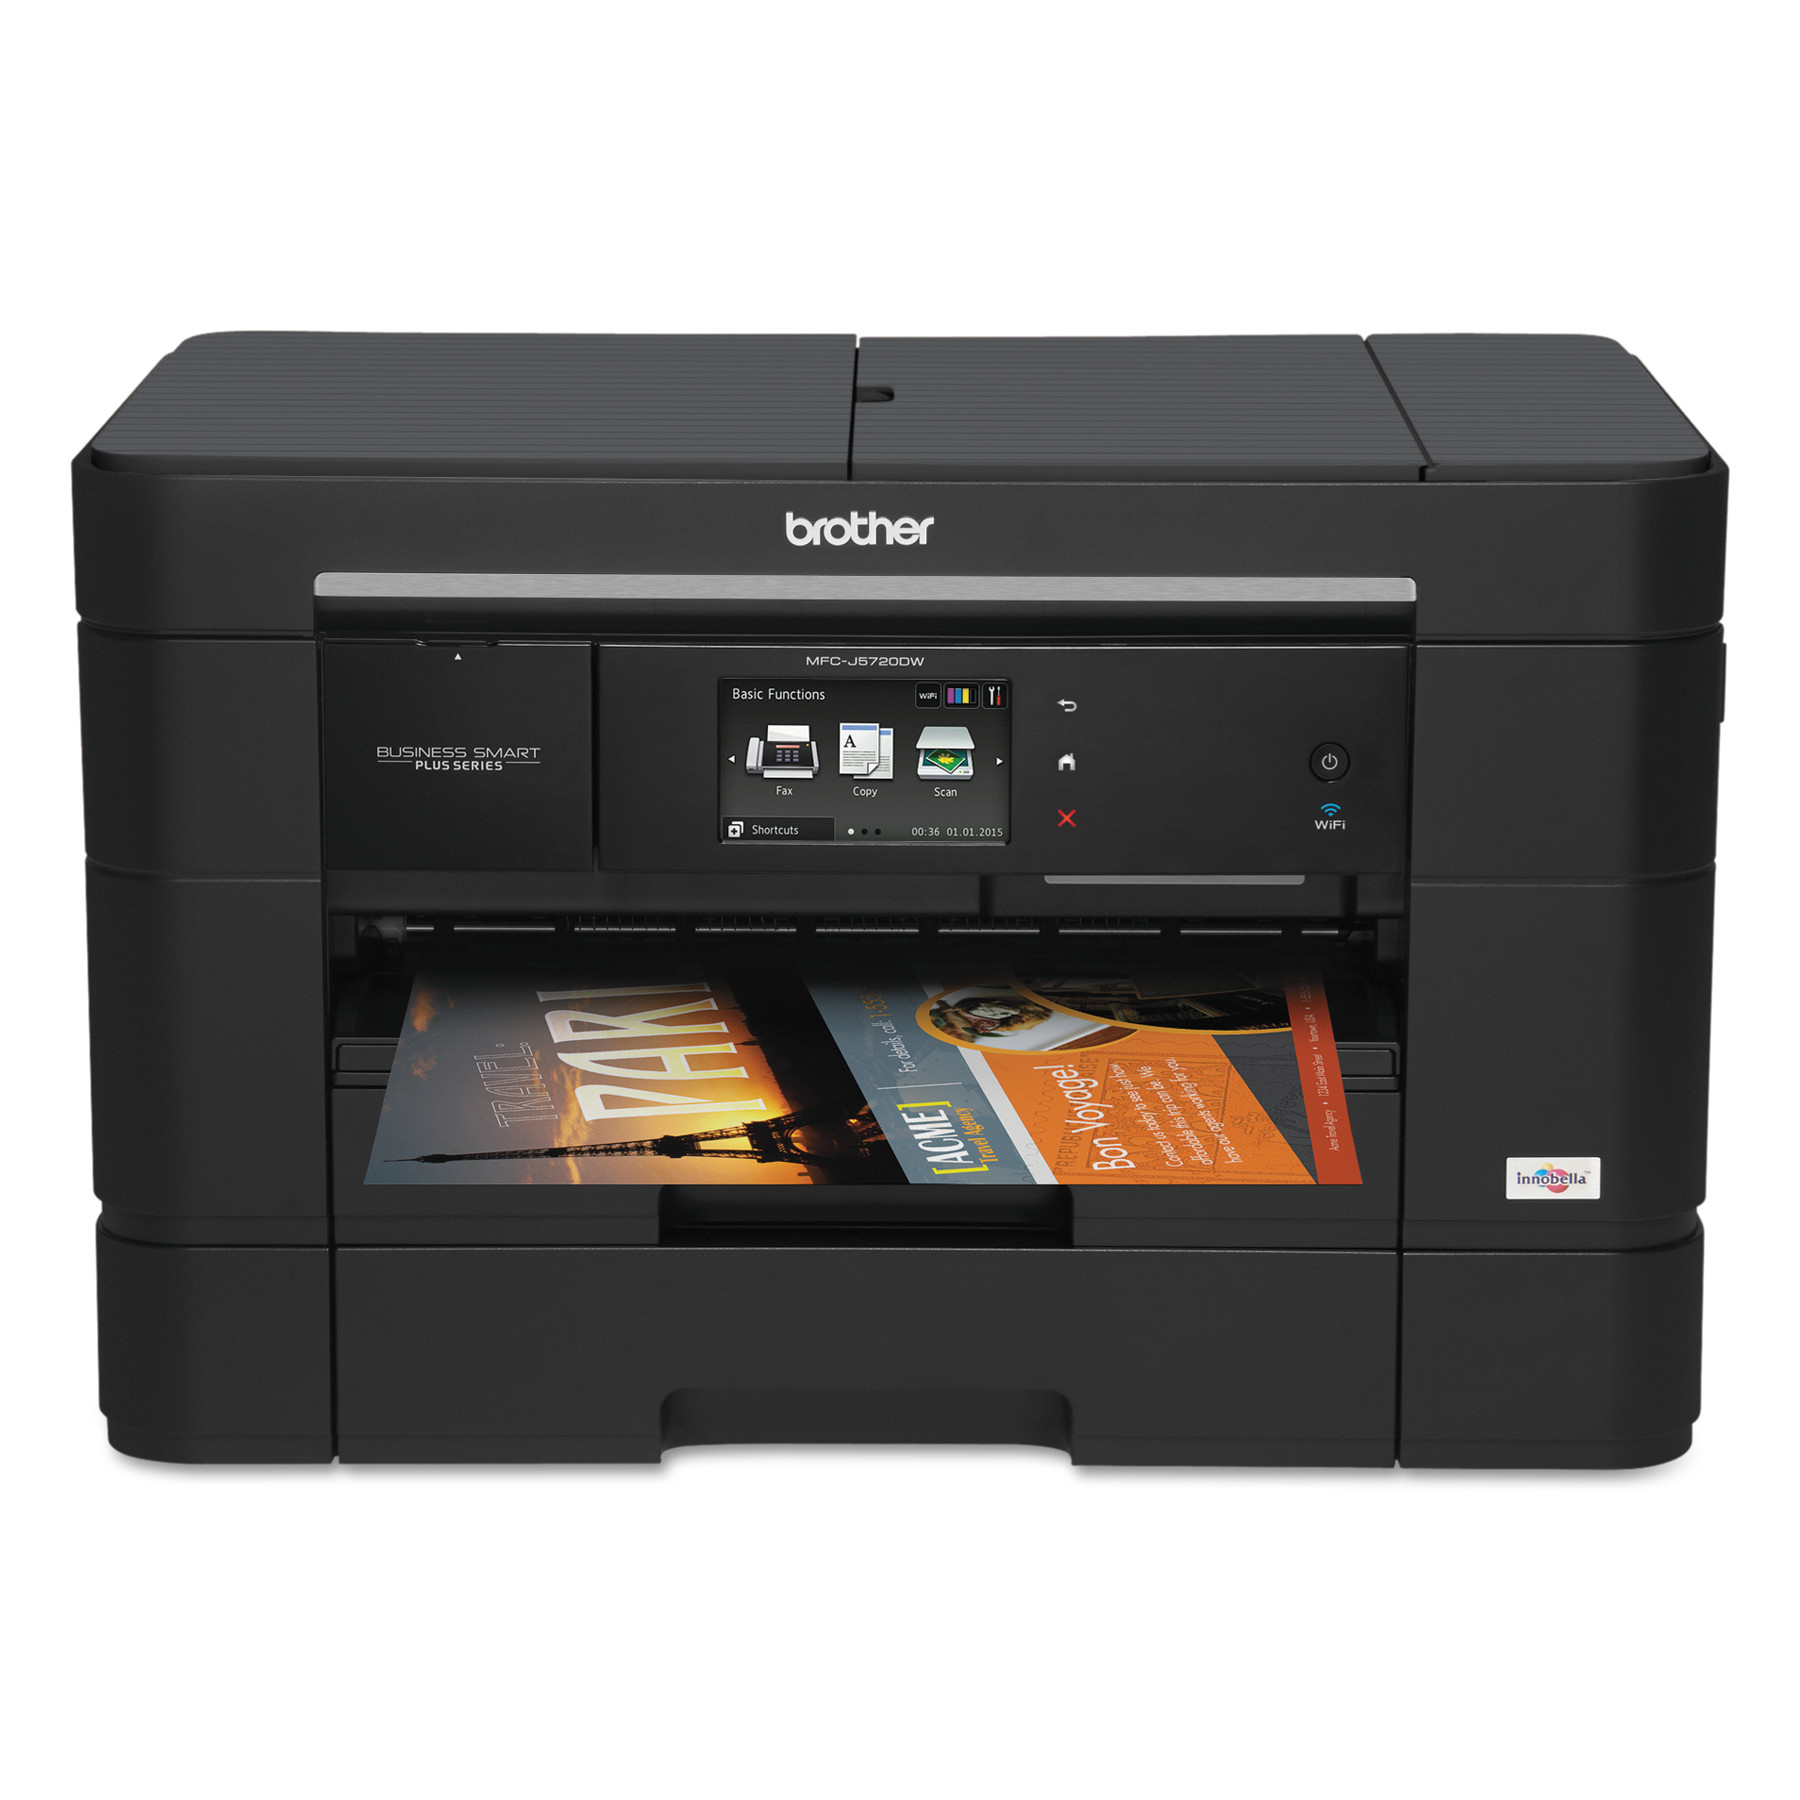 Brother Business Smart Plus MFC-J5720DW All-in-One Inkjet Printer, Copy Fax Print Scan by Brother